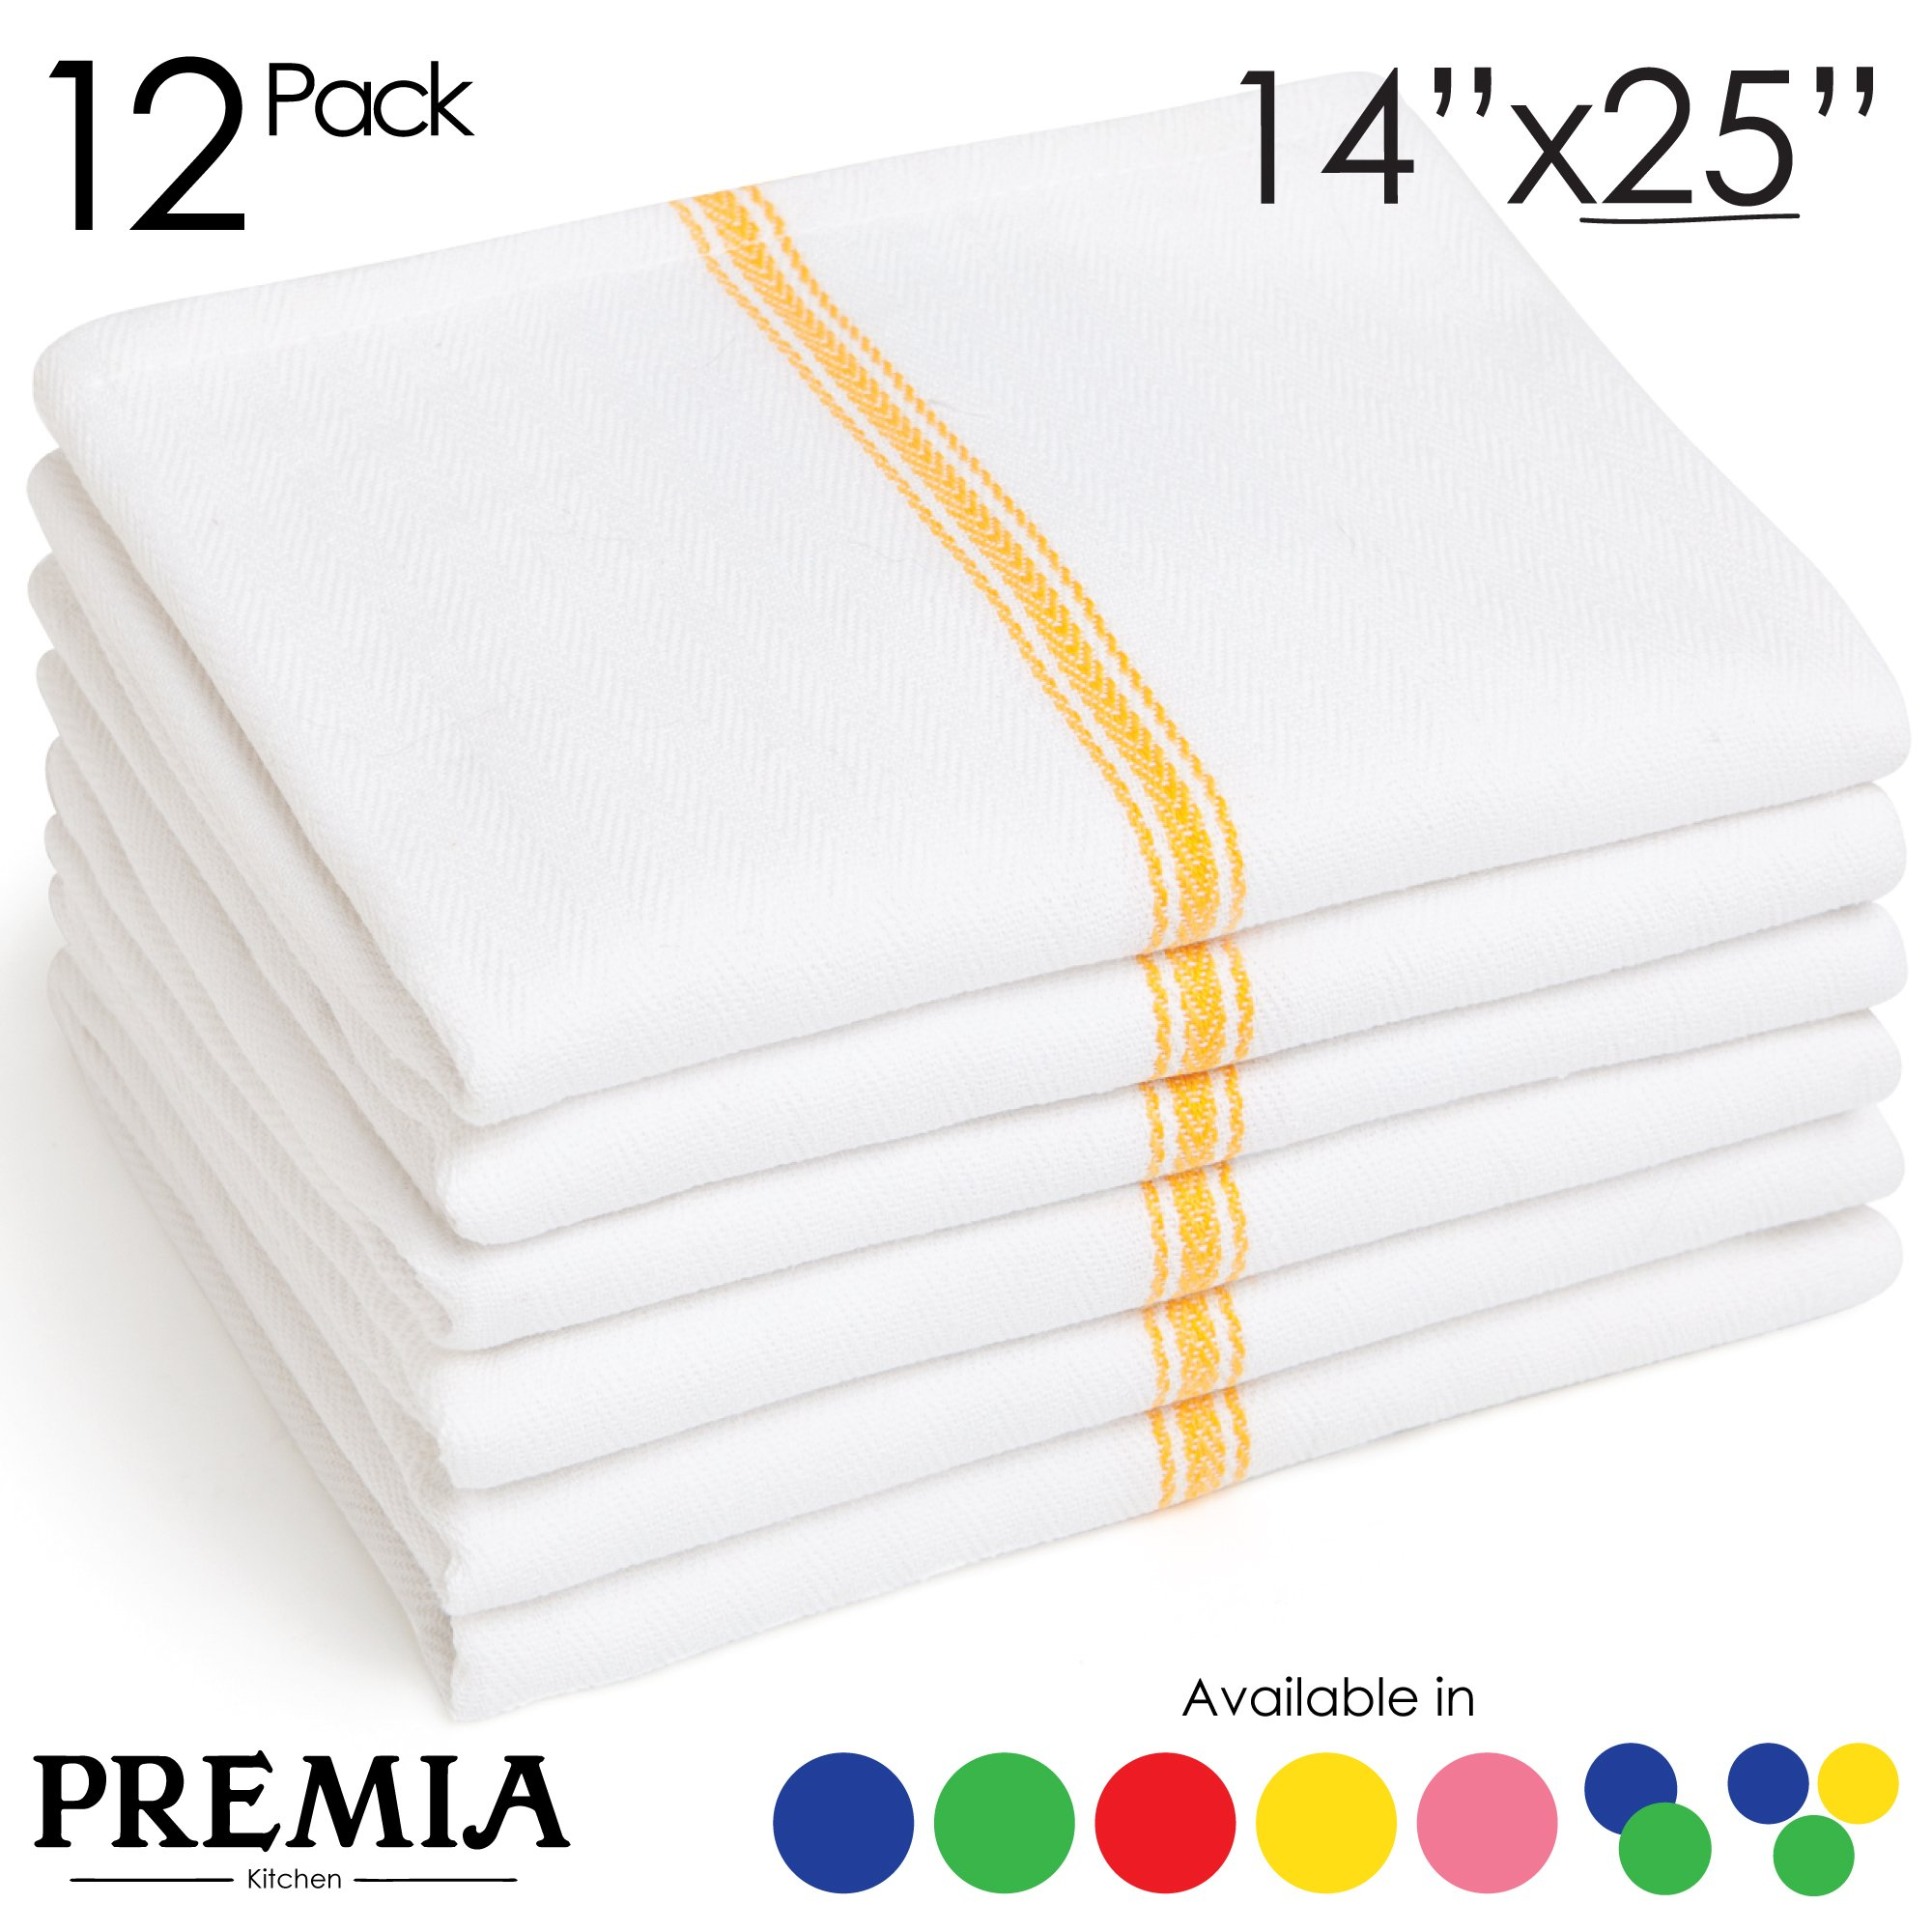 Dish Towels (12 Units) • Commercial Kitchen Towel • Absorbent 100% Cotton Herringbone (14''x25'') • Commercial Quality: 24 oz/dz • Premia Classic Tea Towels in Yellow Stripes • Low Lint by Premia Kitchen